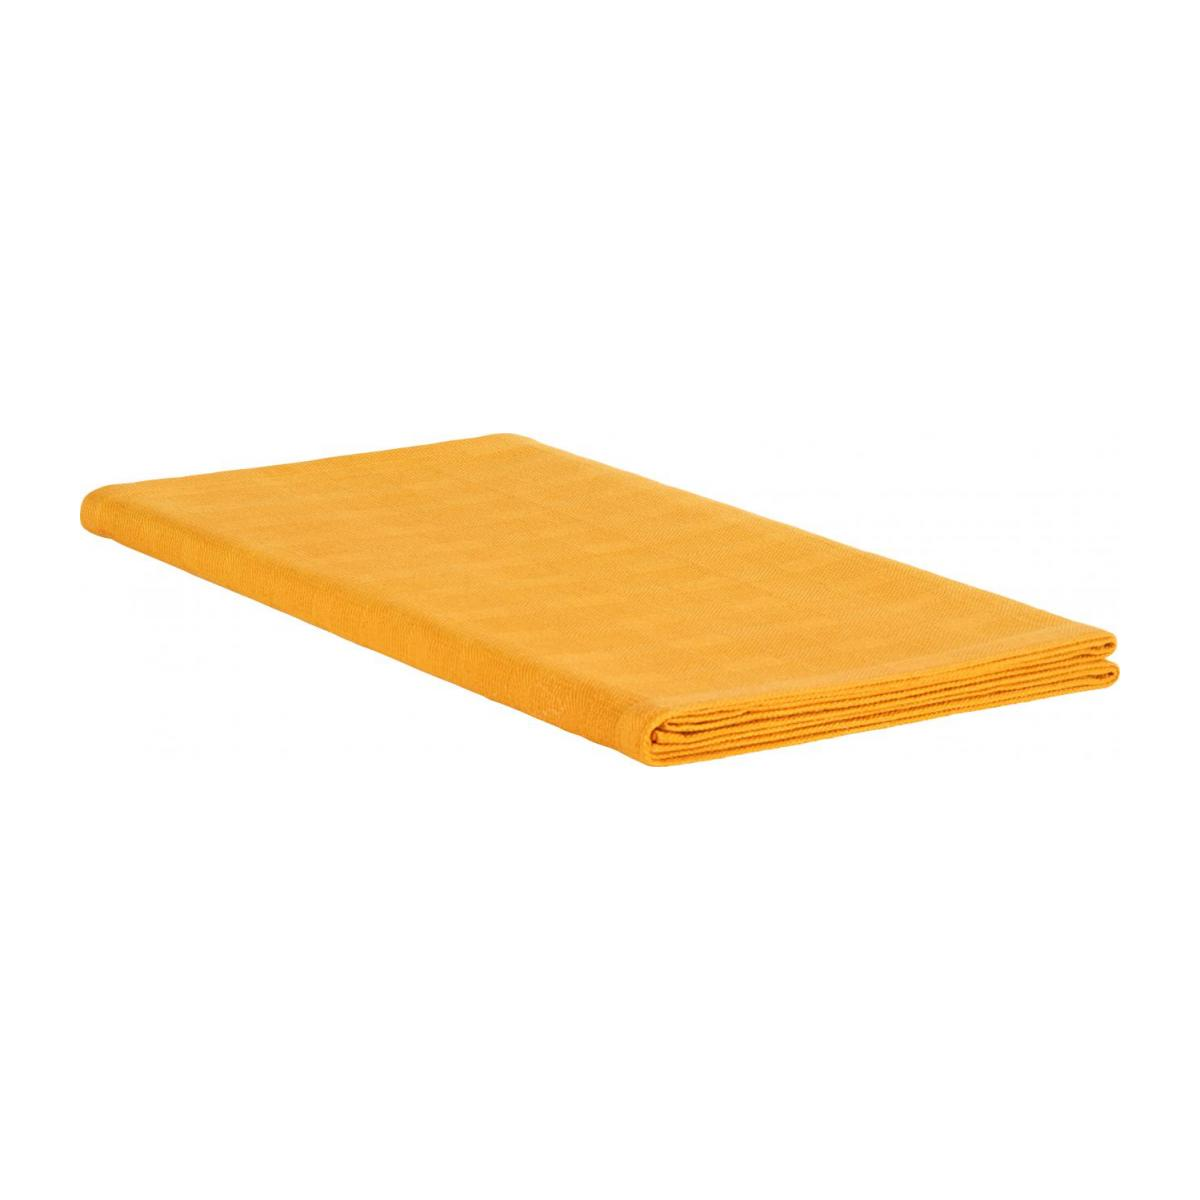 Table runner made of cotton, yellow mustard n°1